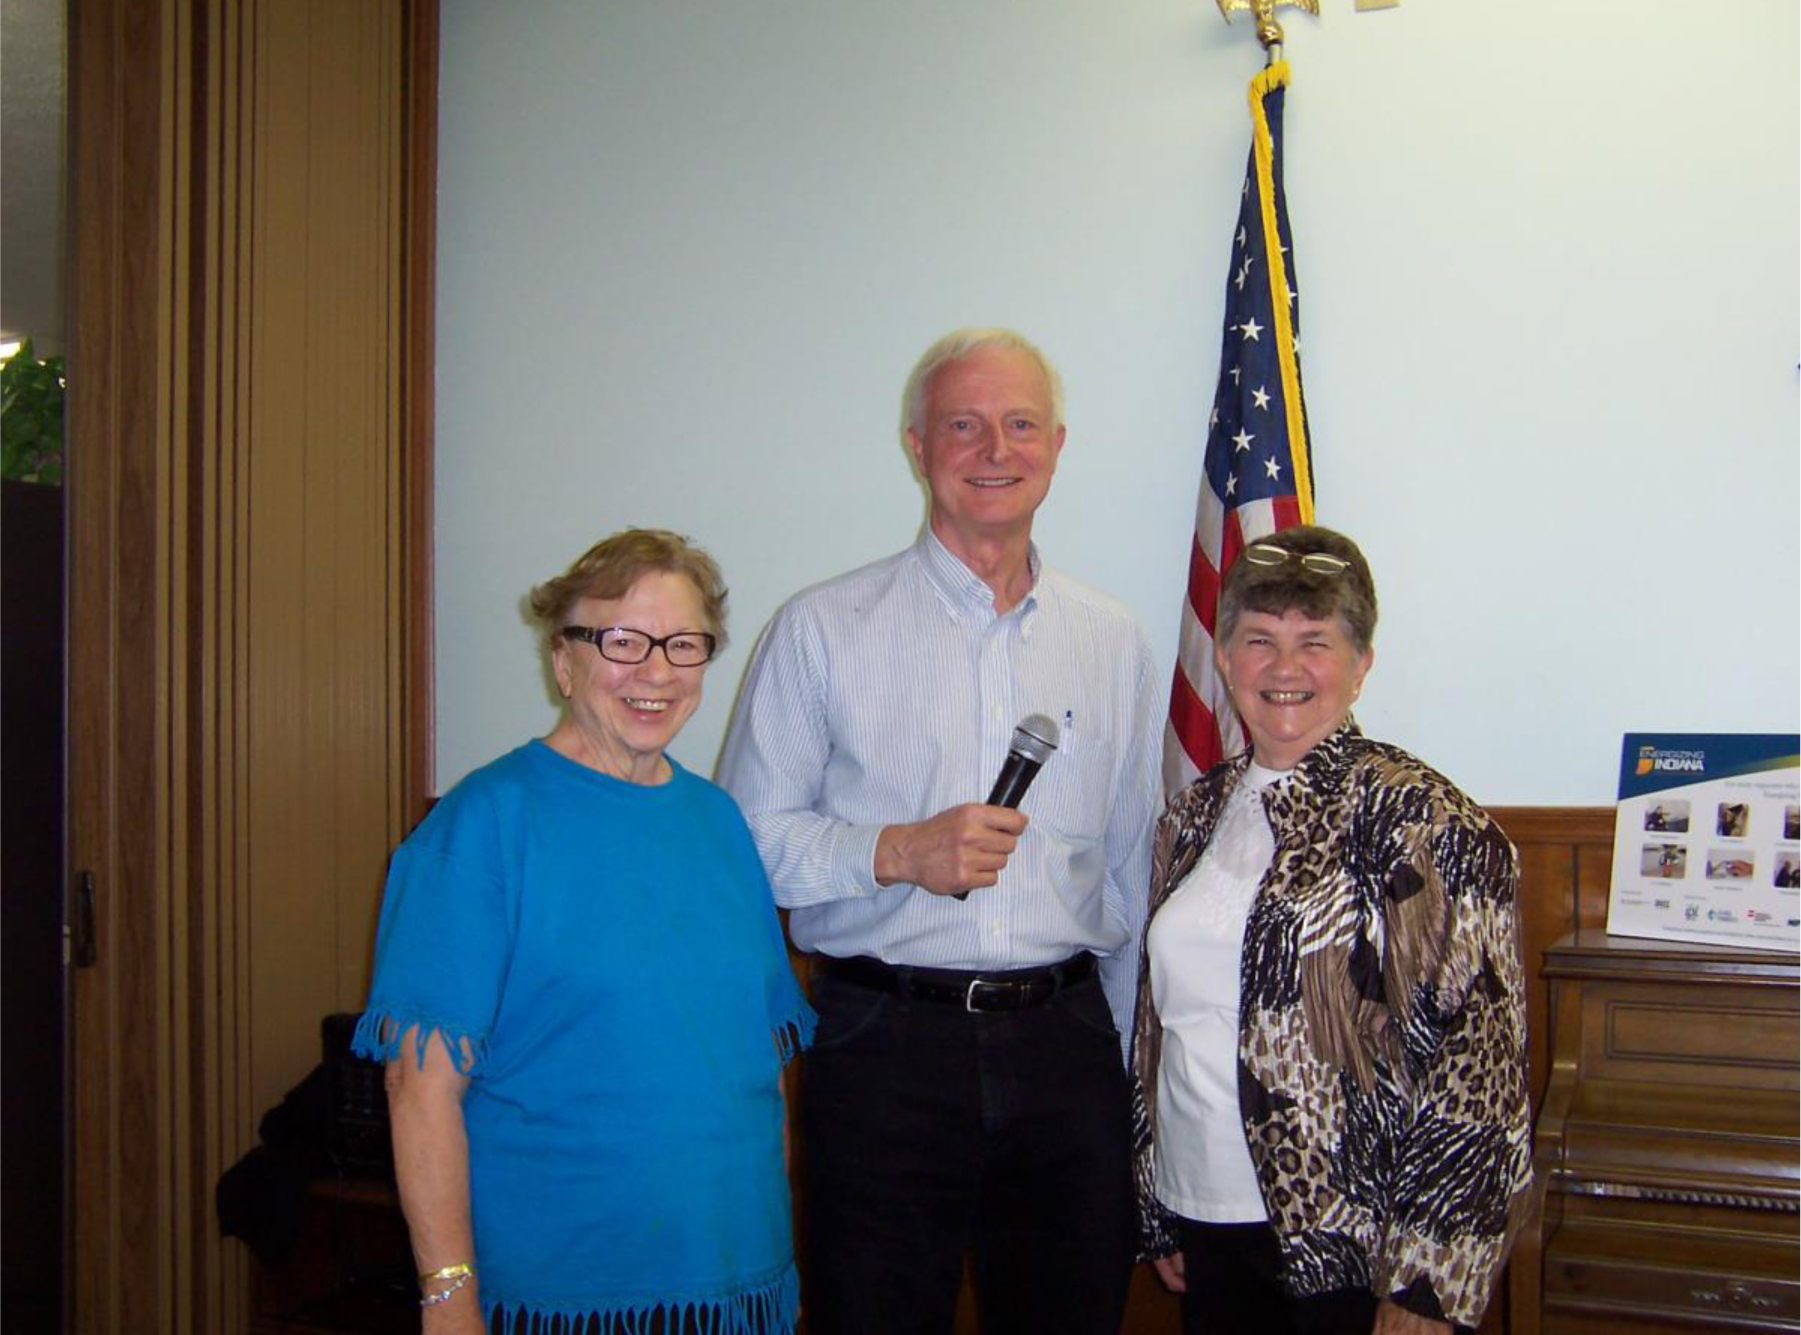 Dr. Charles Harris of Cicero was the guest speaker at the Noblesville Senior Citizen Organization on May 15. Harris discussed his tours known as Chuck's Wagon Wheels. From left: Norma Ross, active member of Senior Citizen group, Dr. Charles Harris and Sheila Raines, owner of Sheila's Country Kitchen, a new catering business run out of the Wesleyan Church in Cicero. (Photo provided by Senior Citizen Organization)